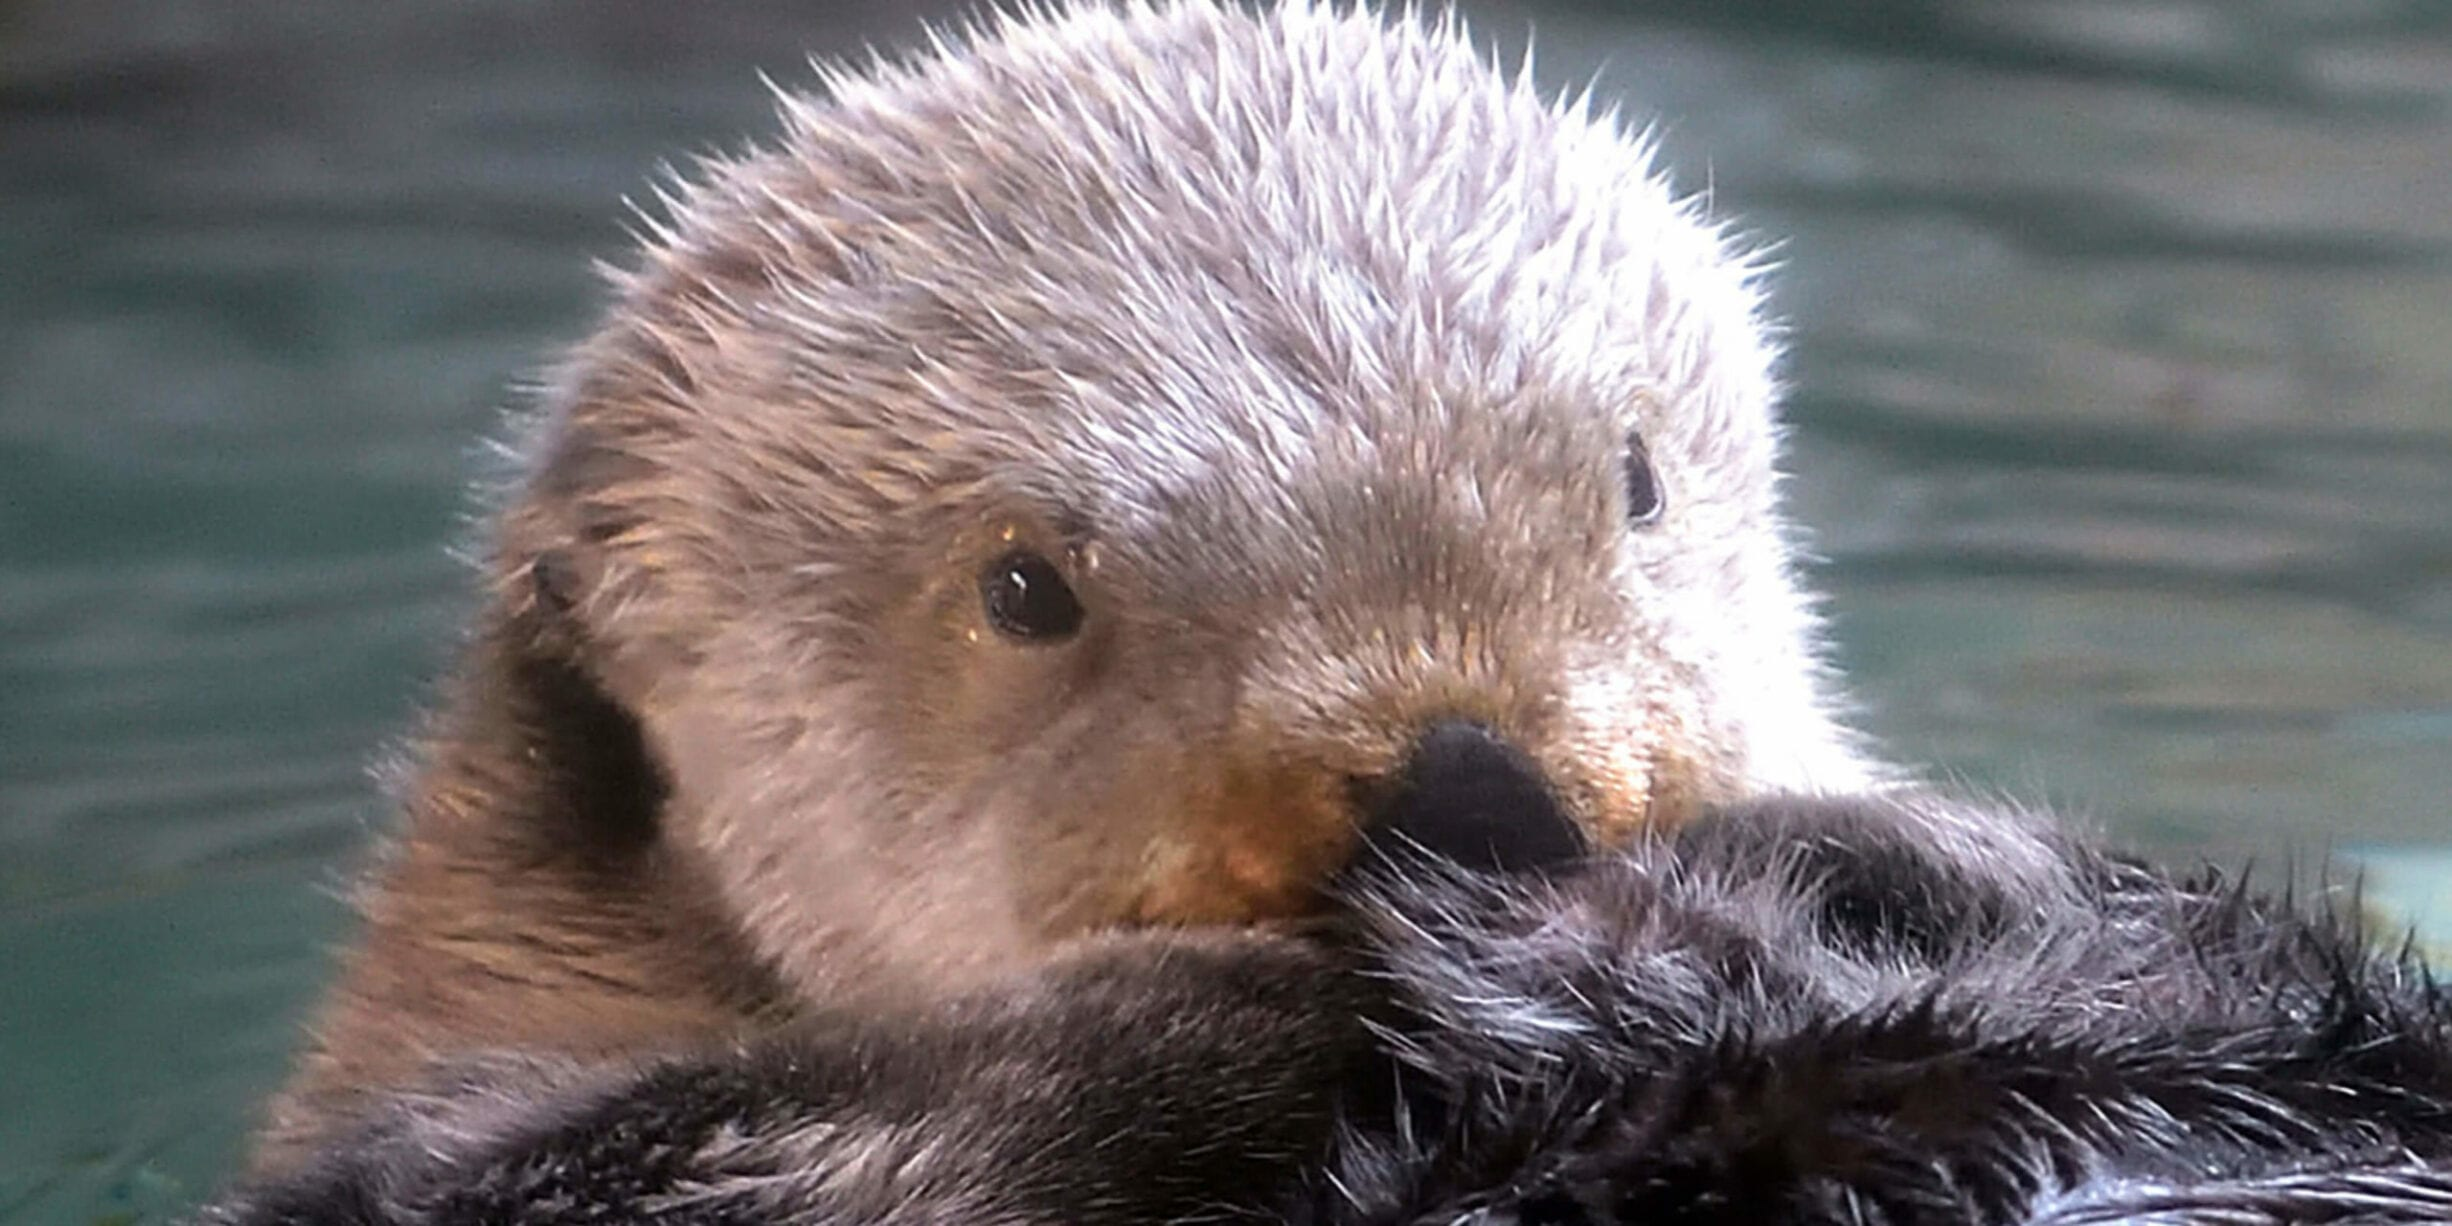 Otter close up in water